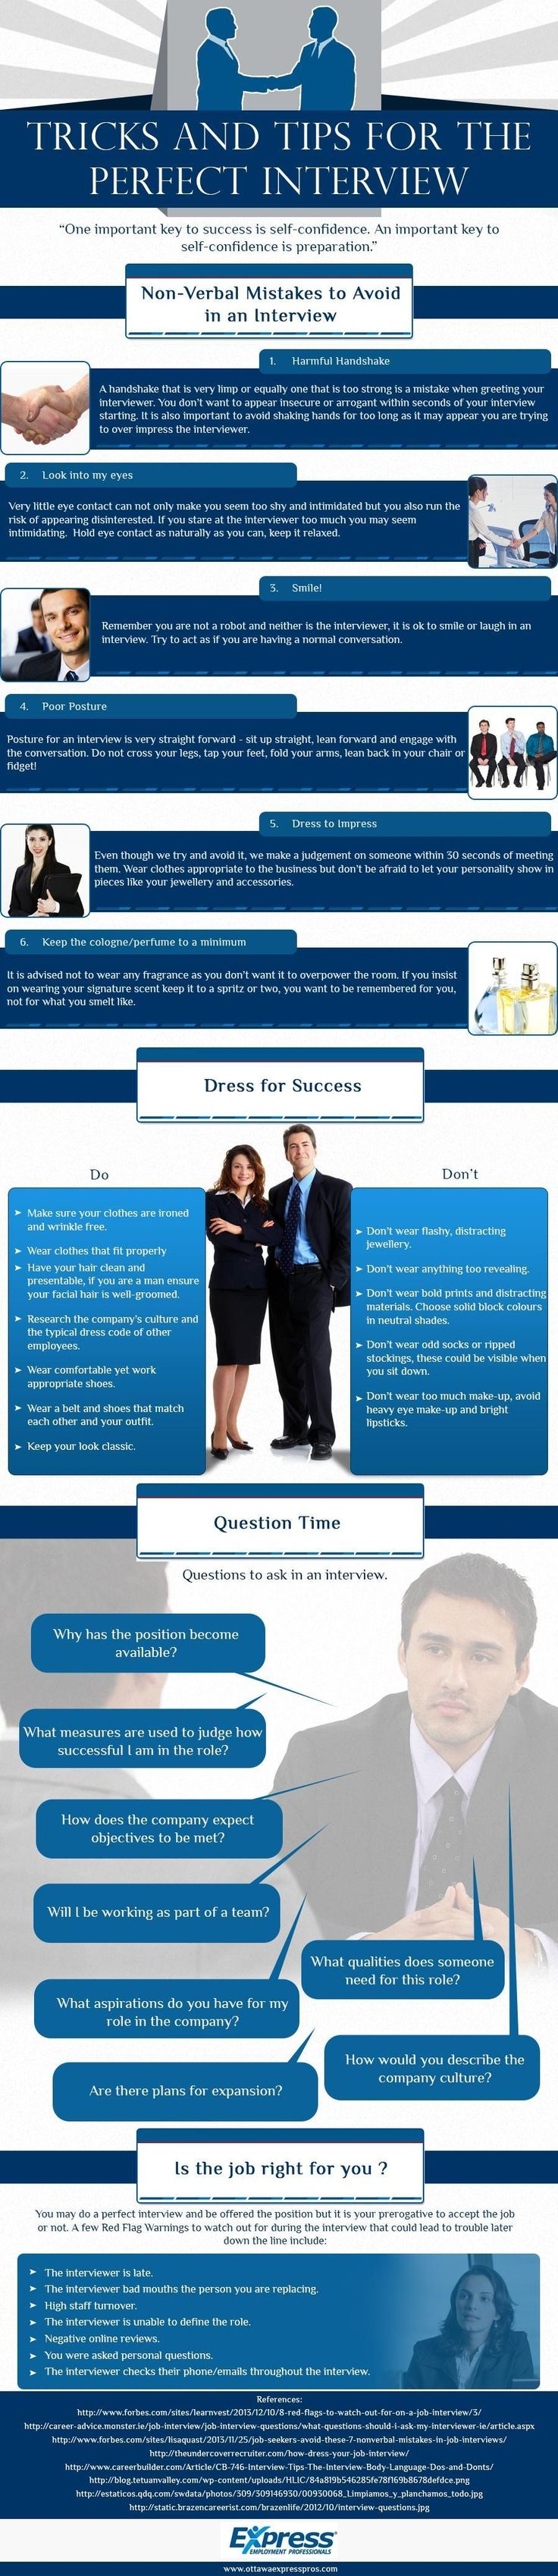 best images about job search resume interviewing tips on tips and tricks for a successful interview